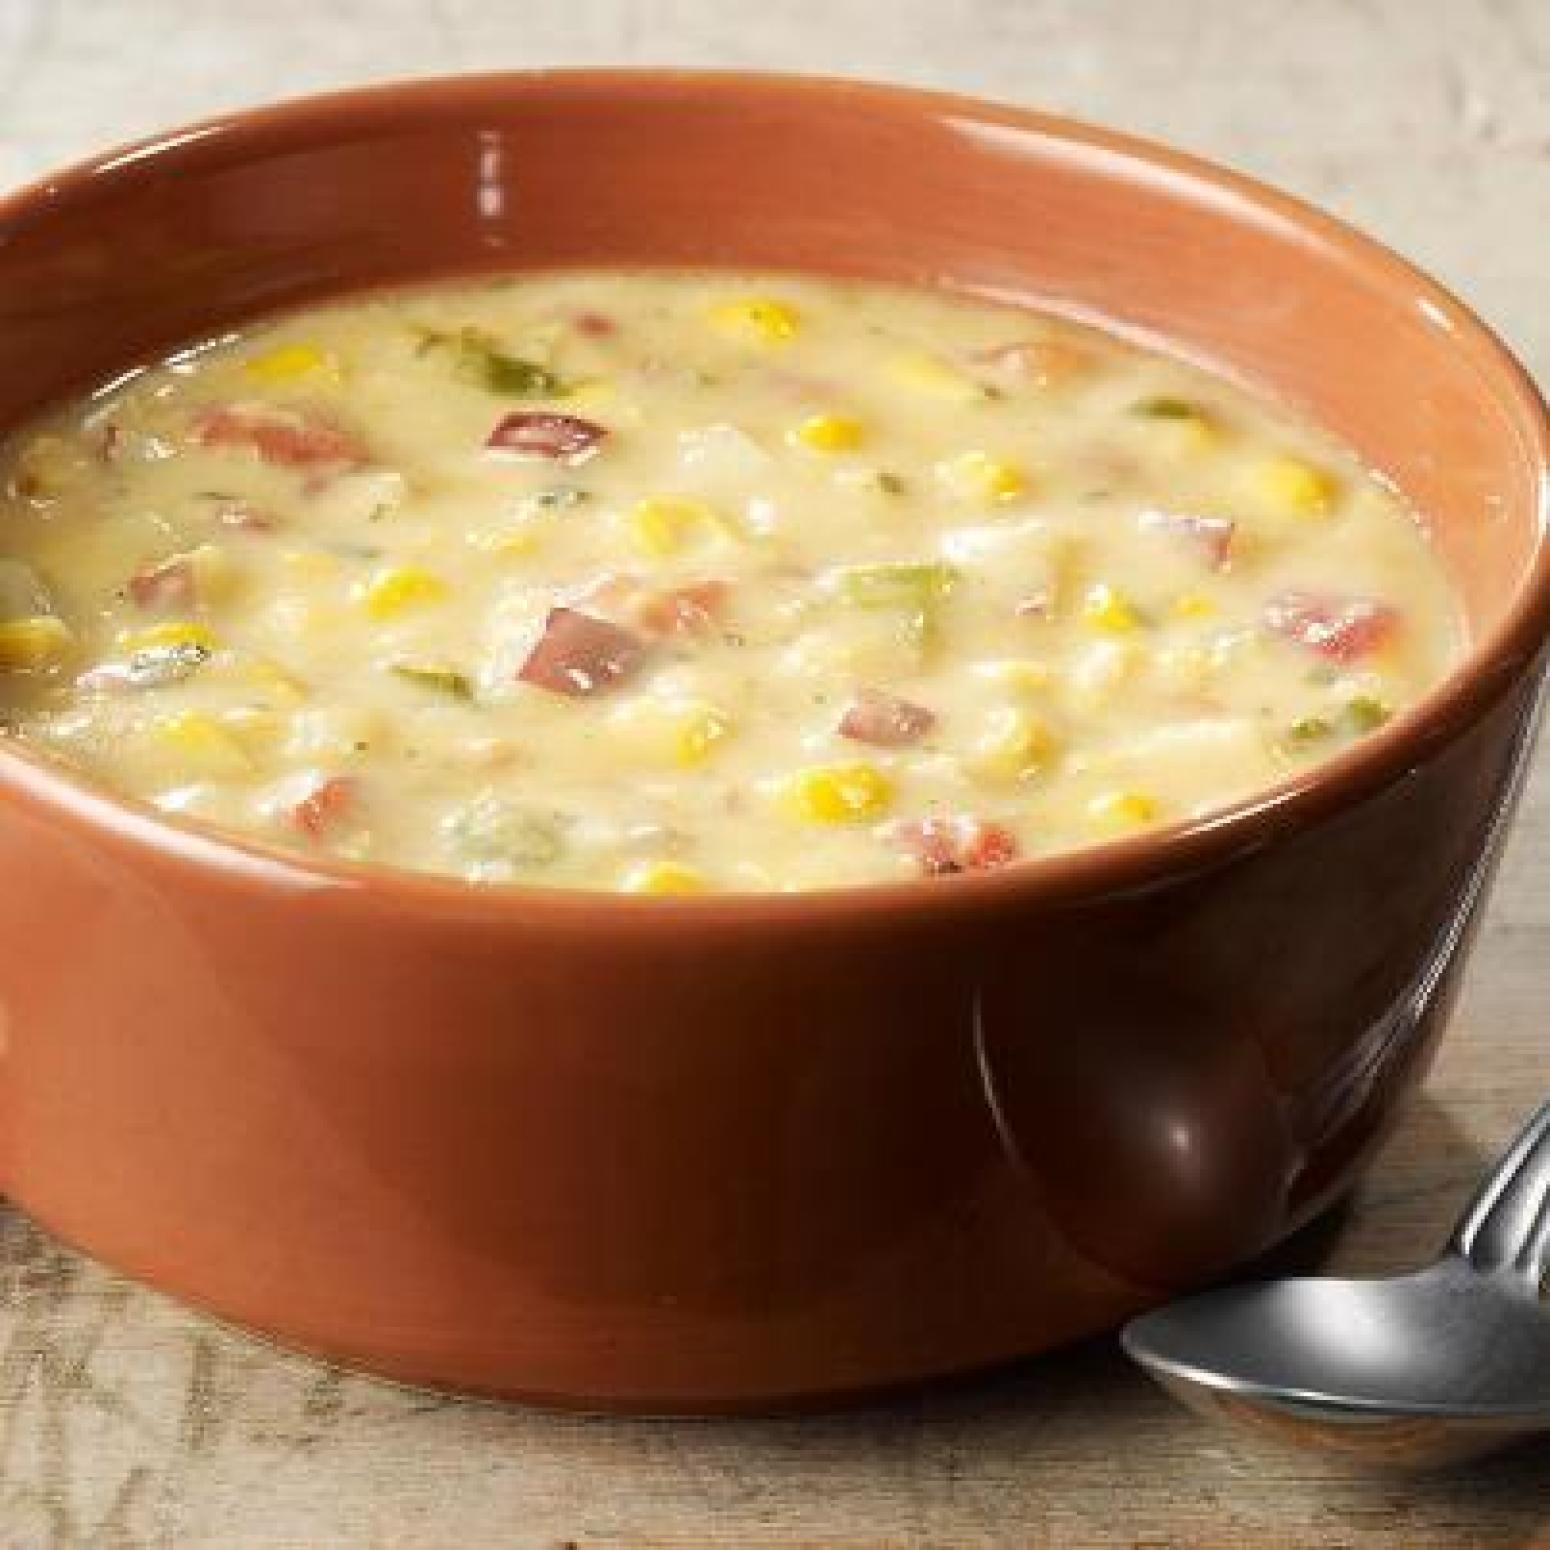 Panera Summer Corn Chowder Ingredients  Panera Bread Summer Corn Chowder Copycat Recipe